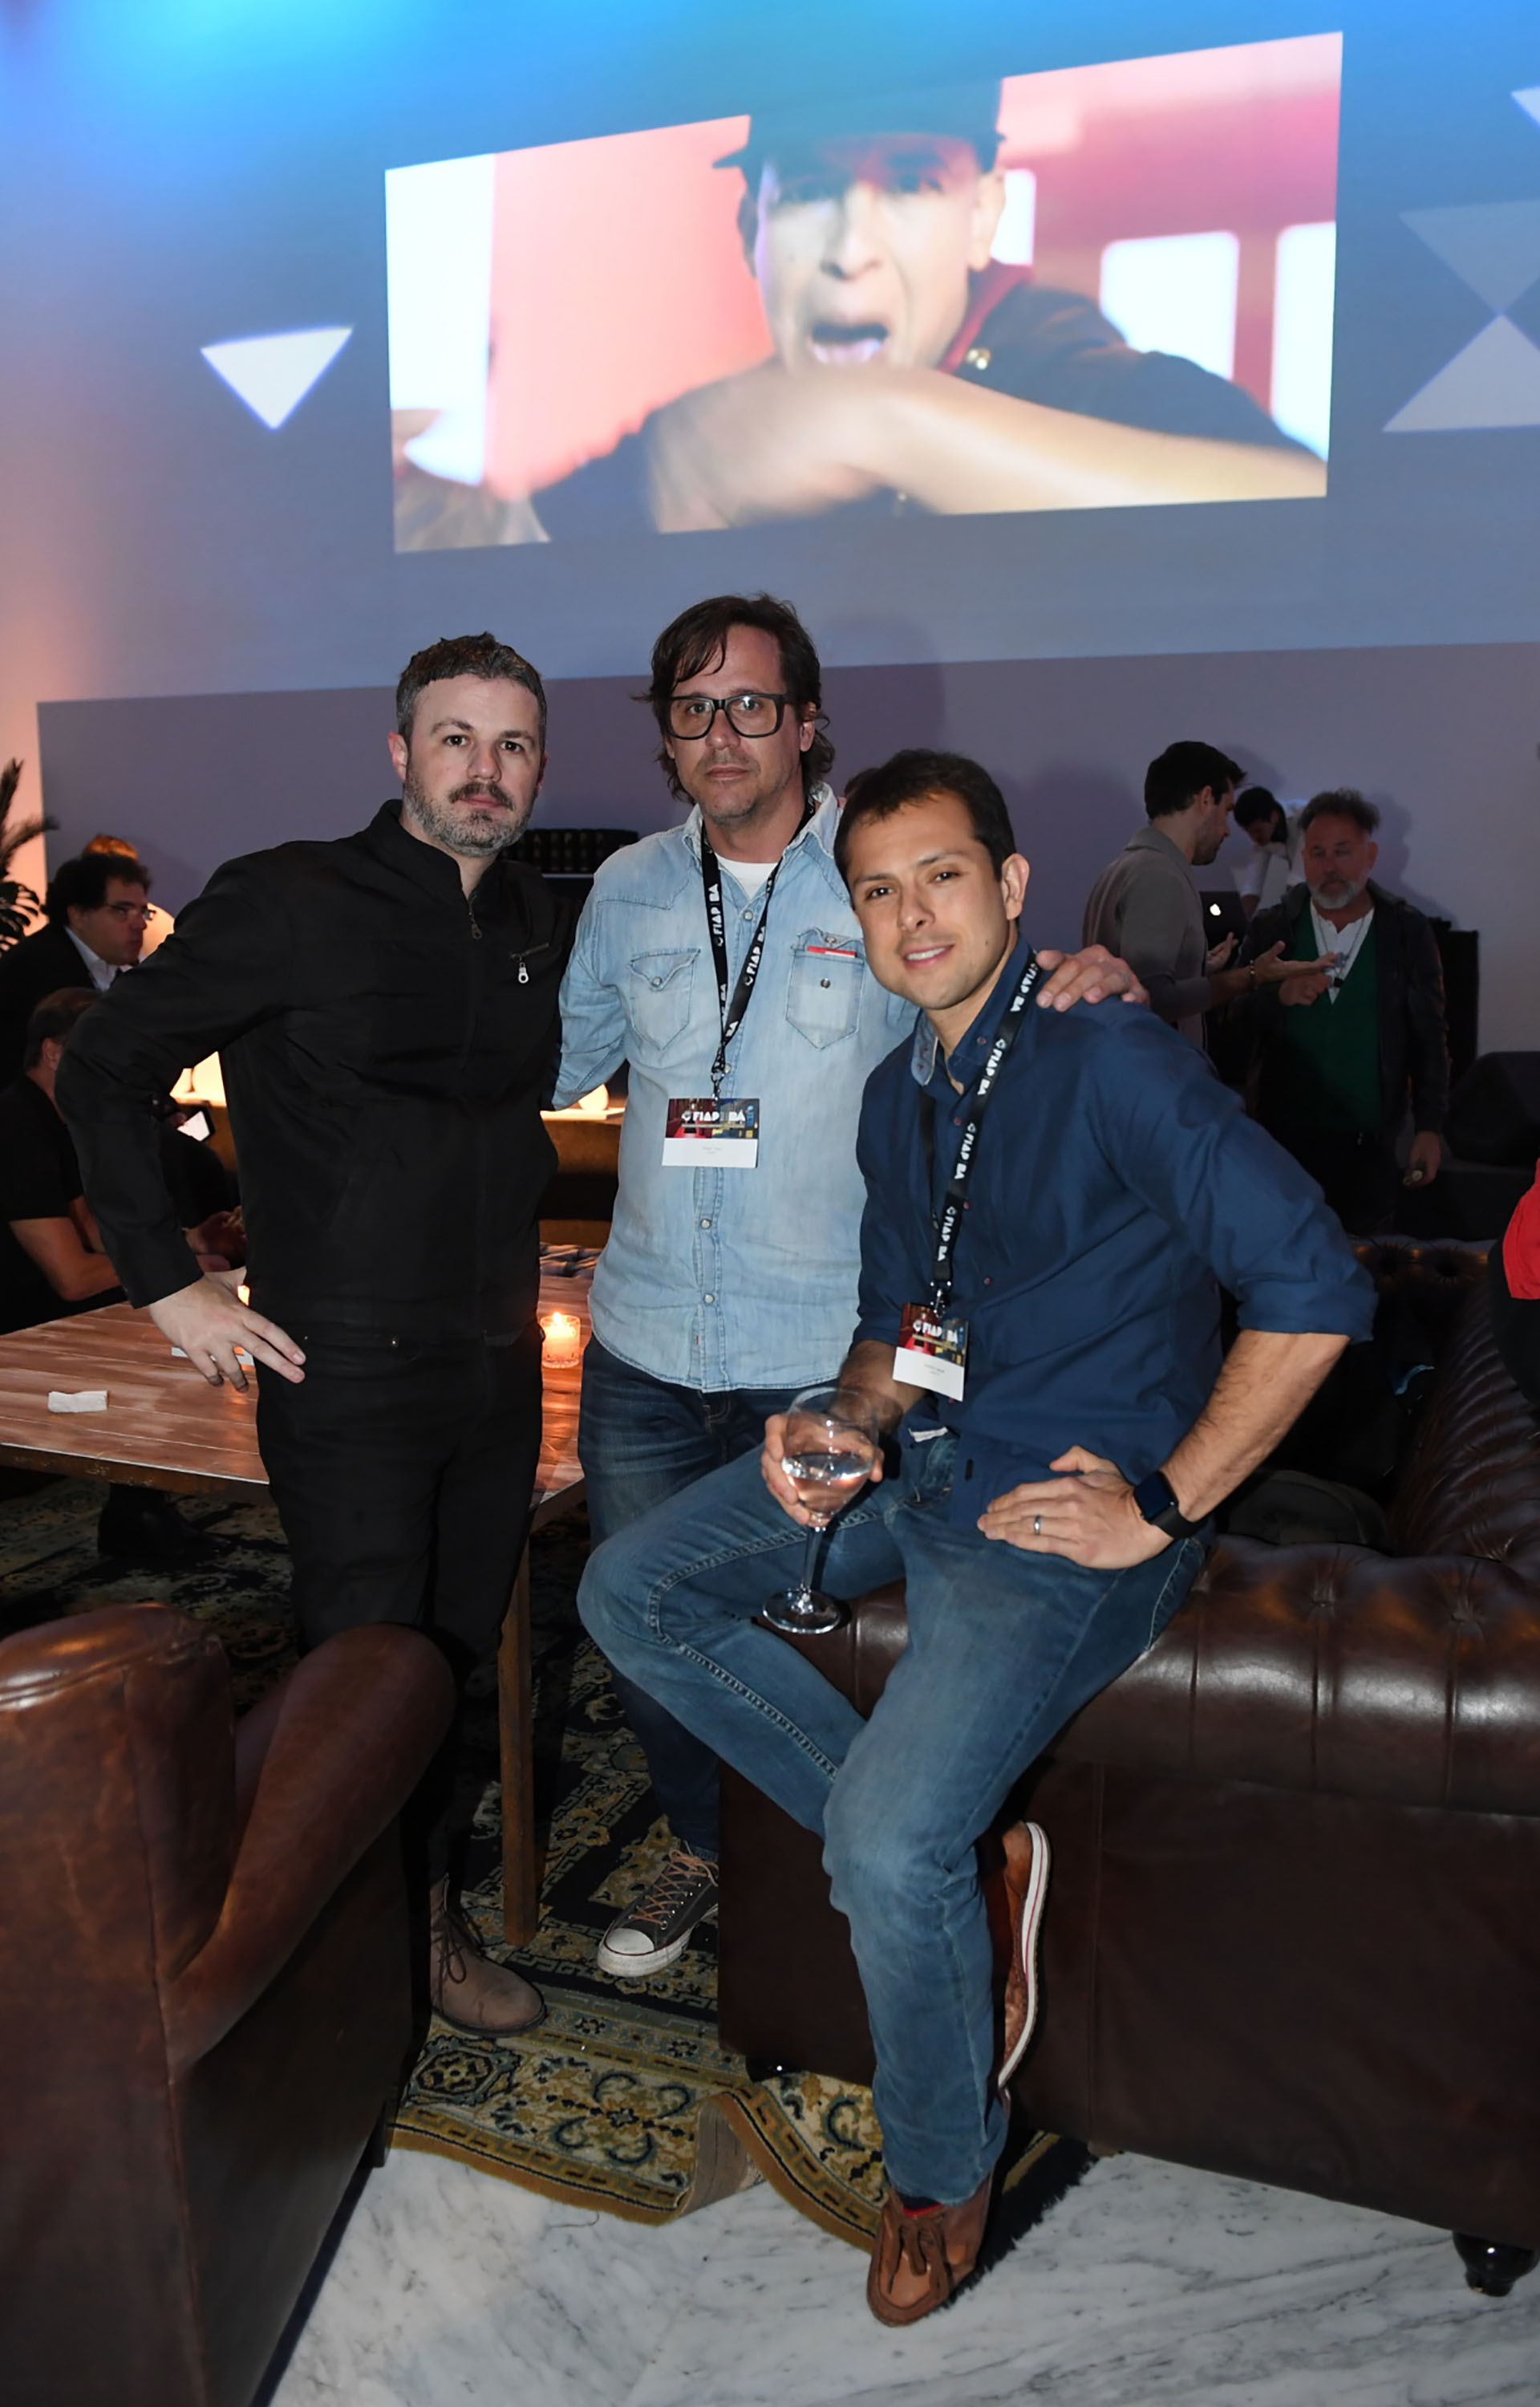 Christian Caldwell (Chief Creative Officer de McCaan), Diego Tuya (Executive Creative Director de Mercado McCann) y Rodrigo Raíces (Grey Group)